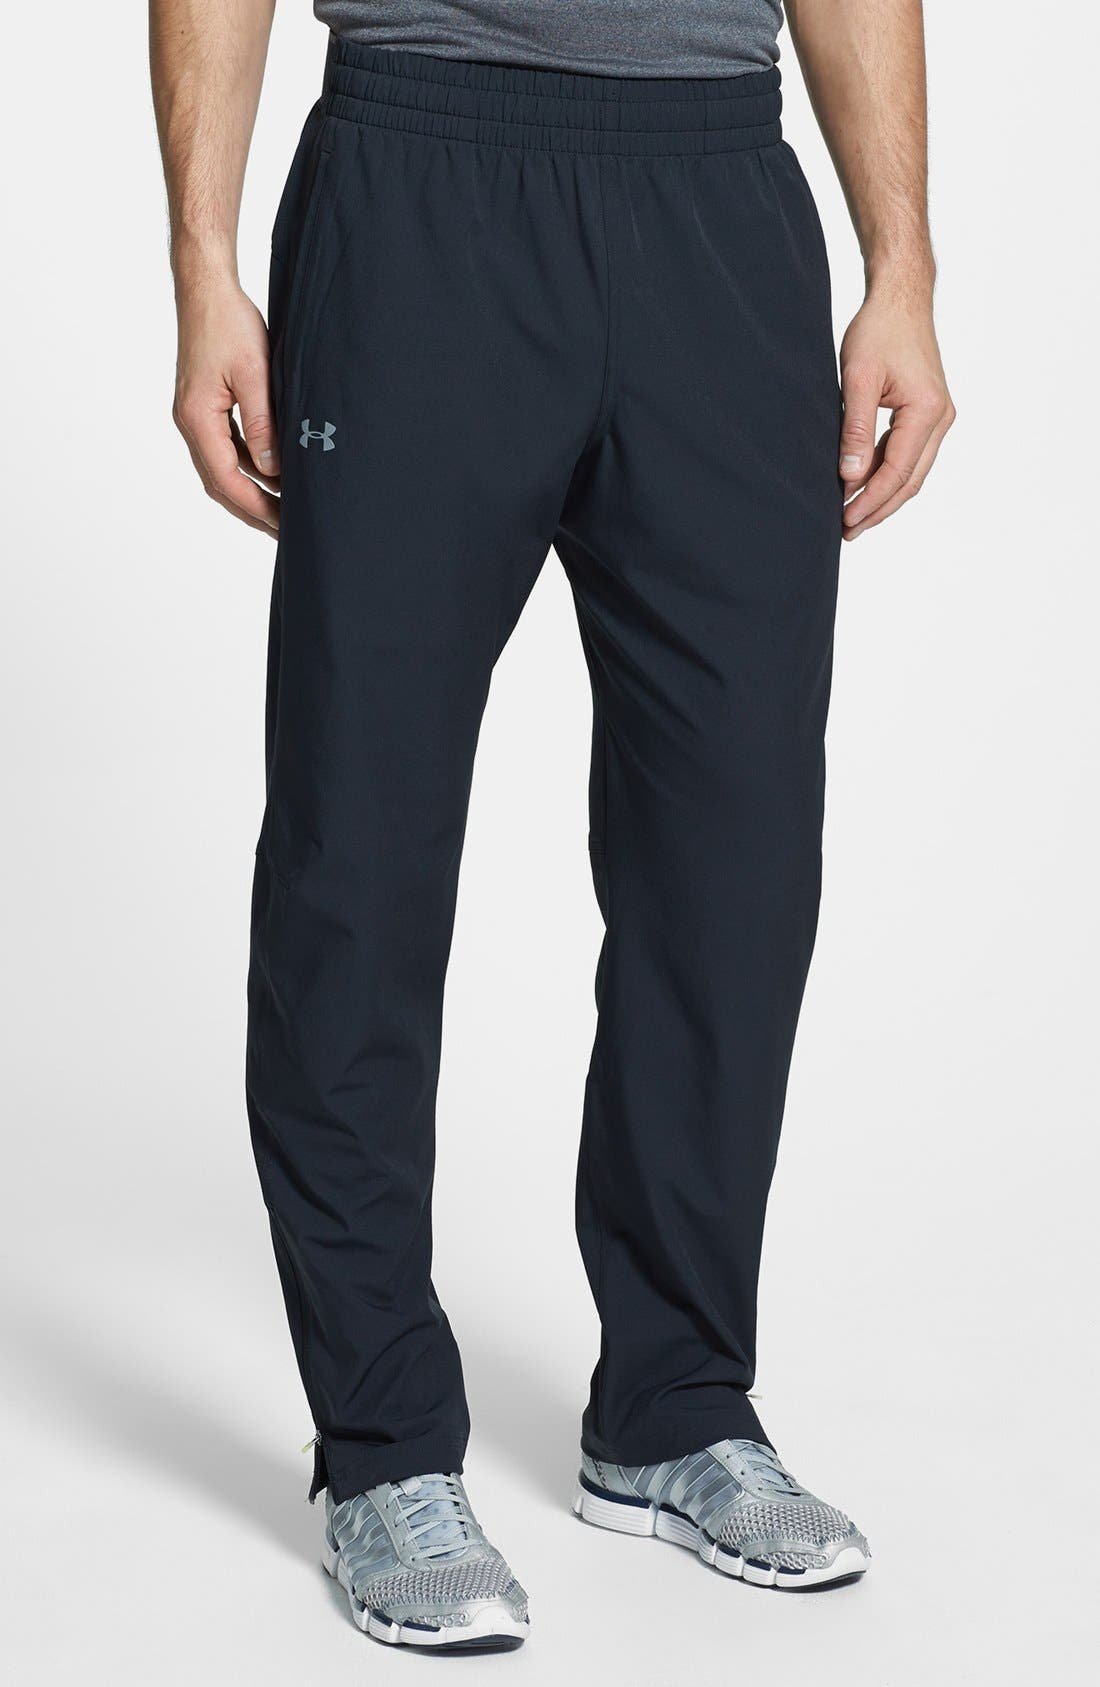 Alternate Image 1 Selected - Under Armour X-ALT Woven Tapered Pants